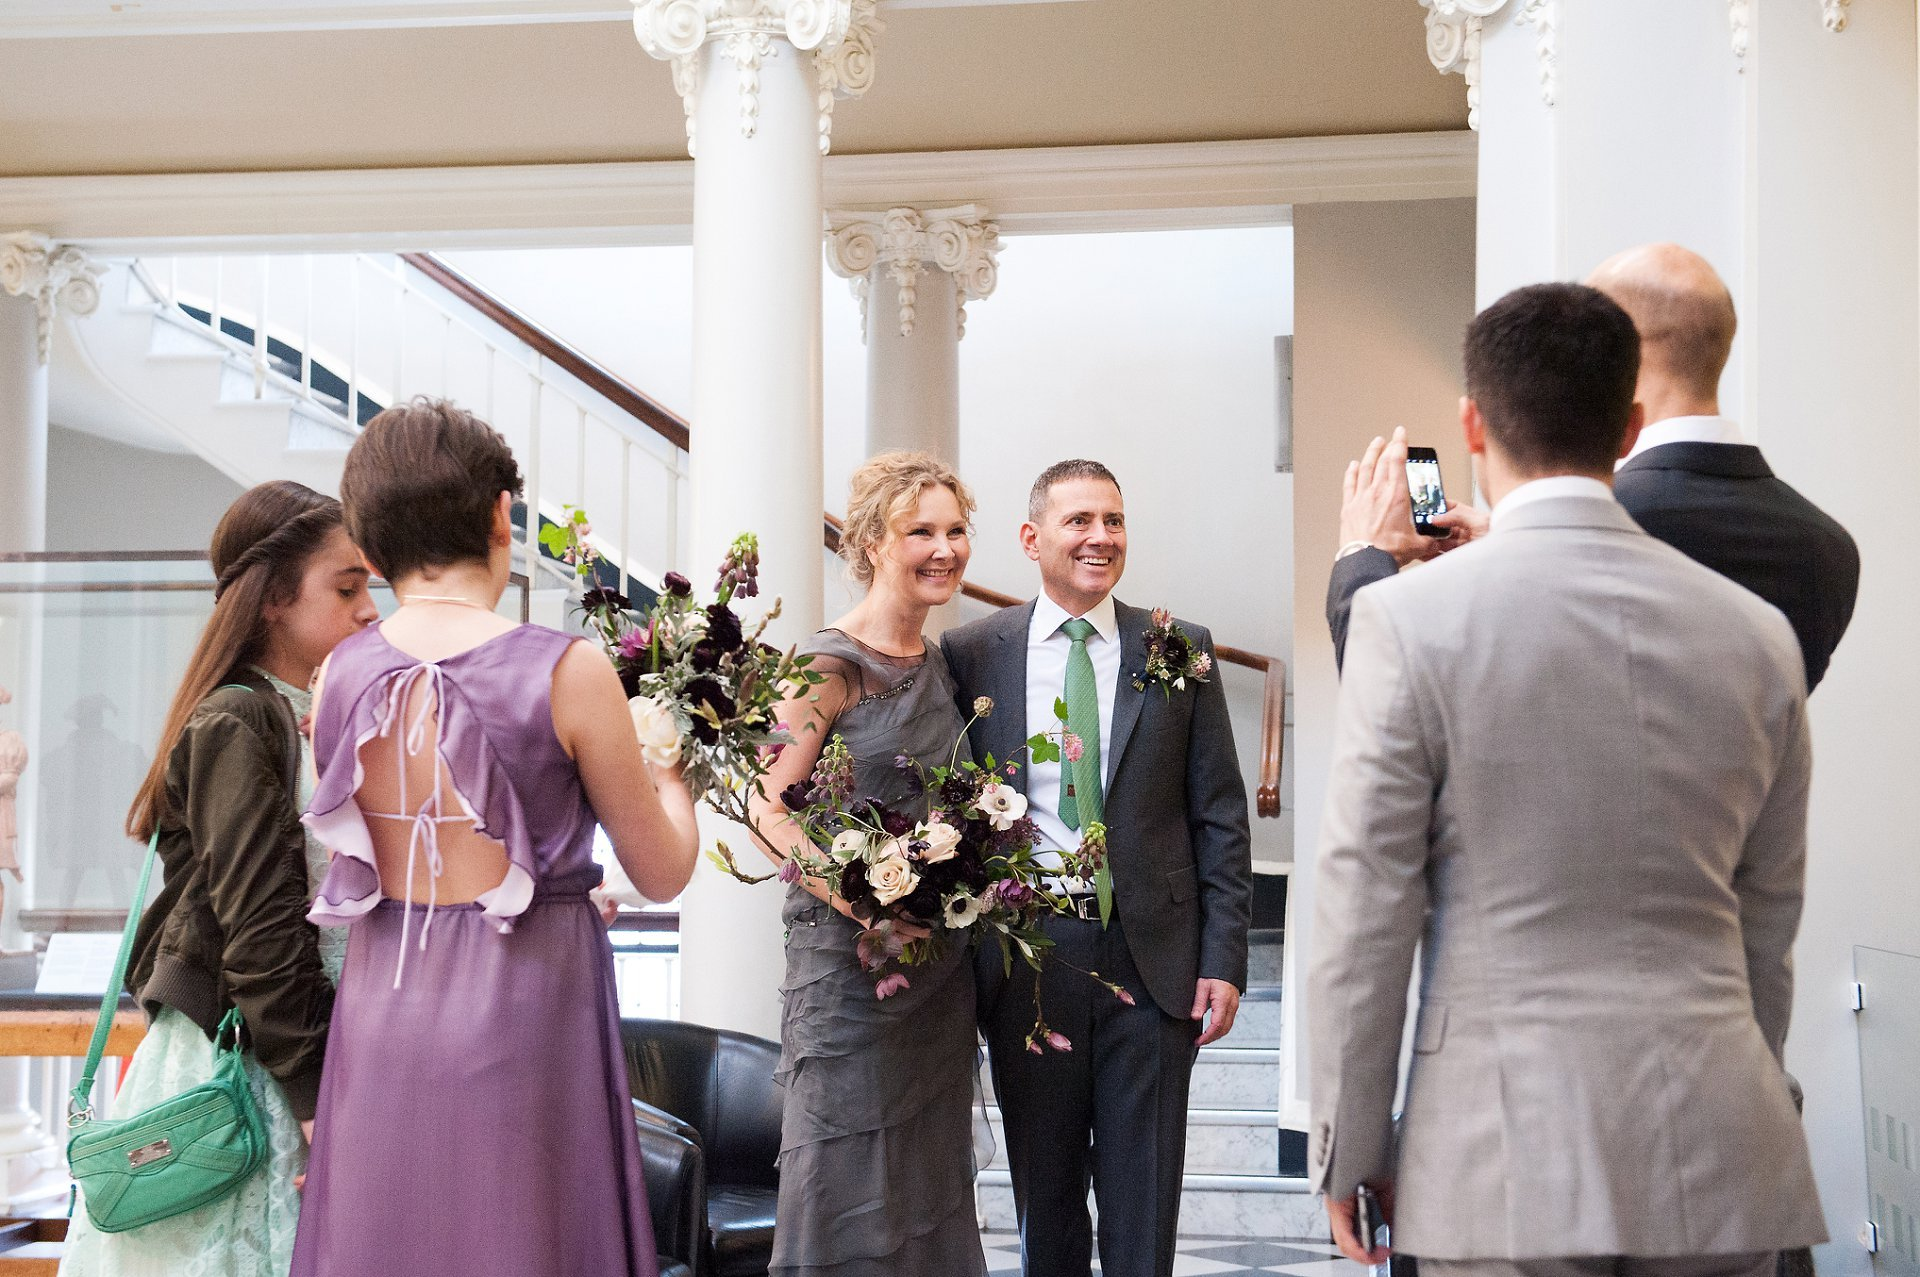 Guests take photos of the bride and groom at Greenwich Register Office, Woolwich Town Hall